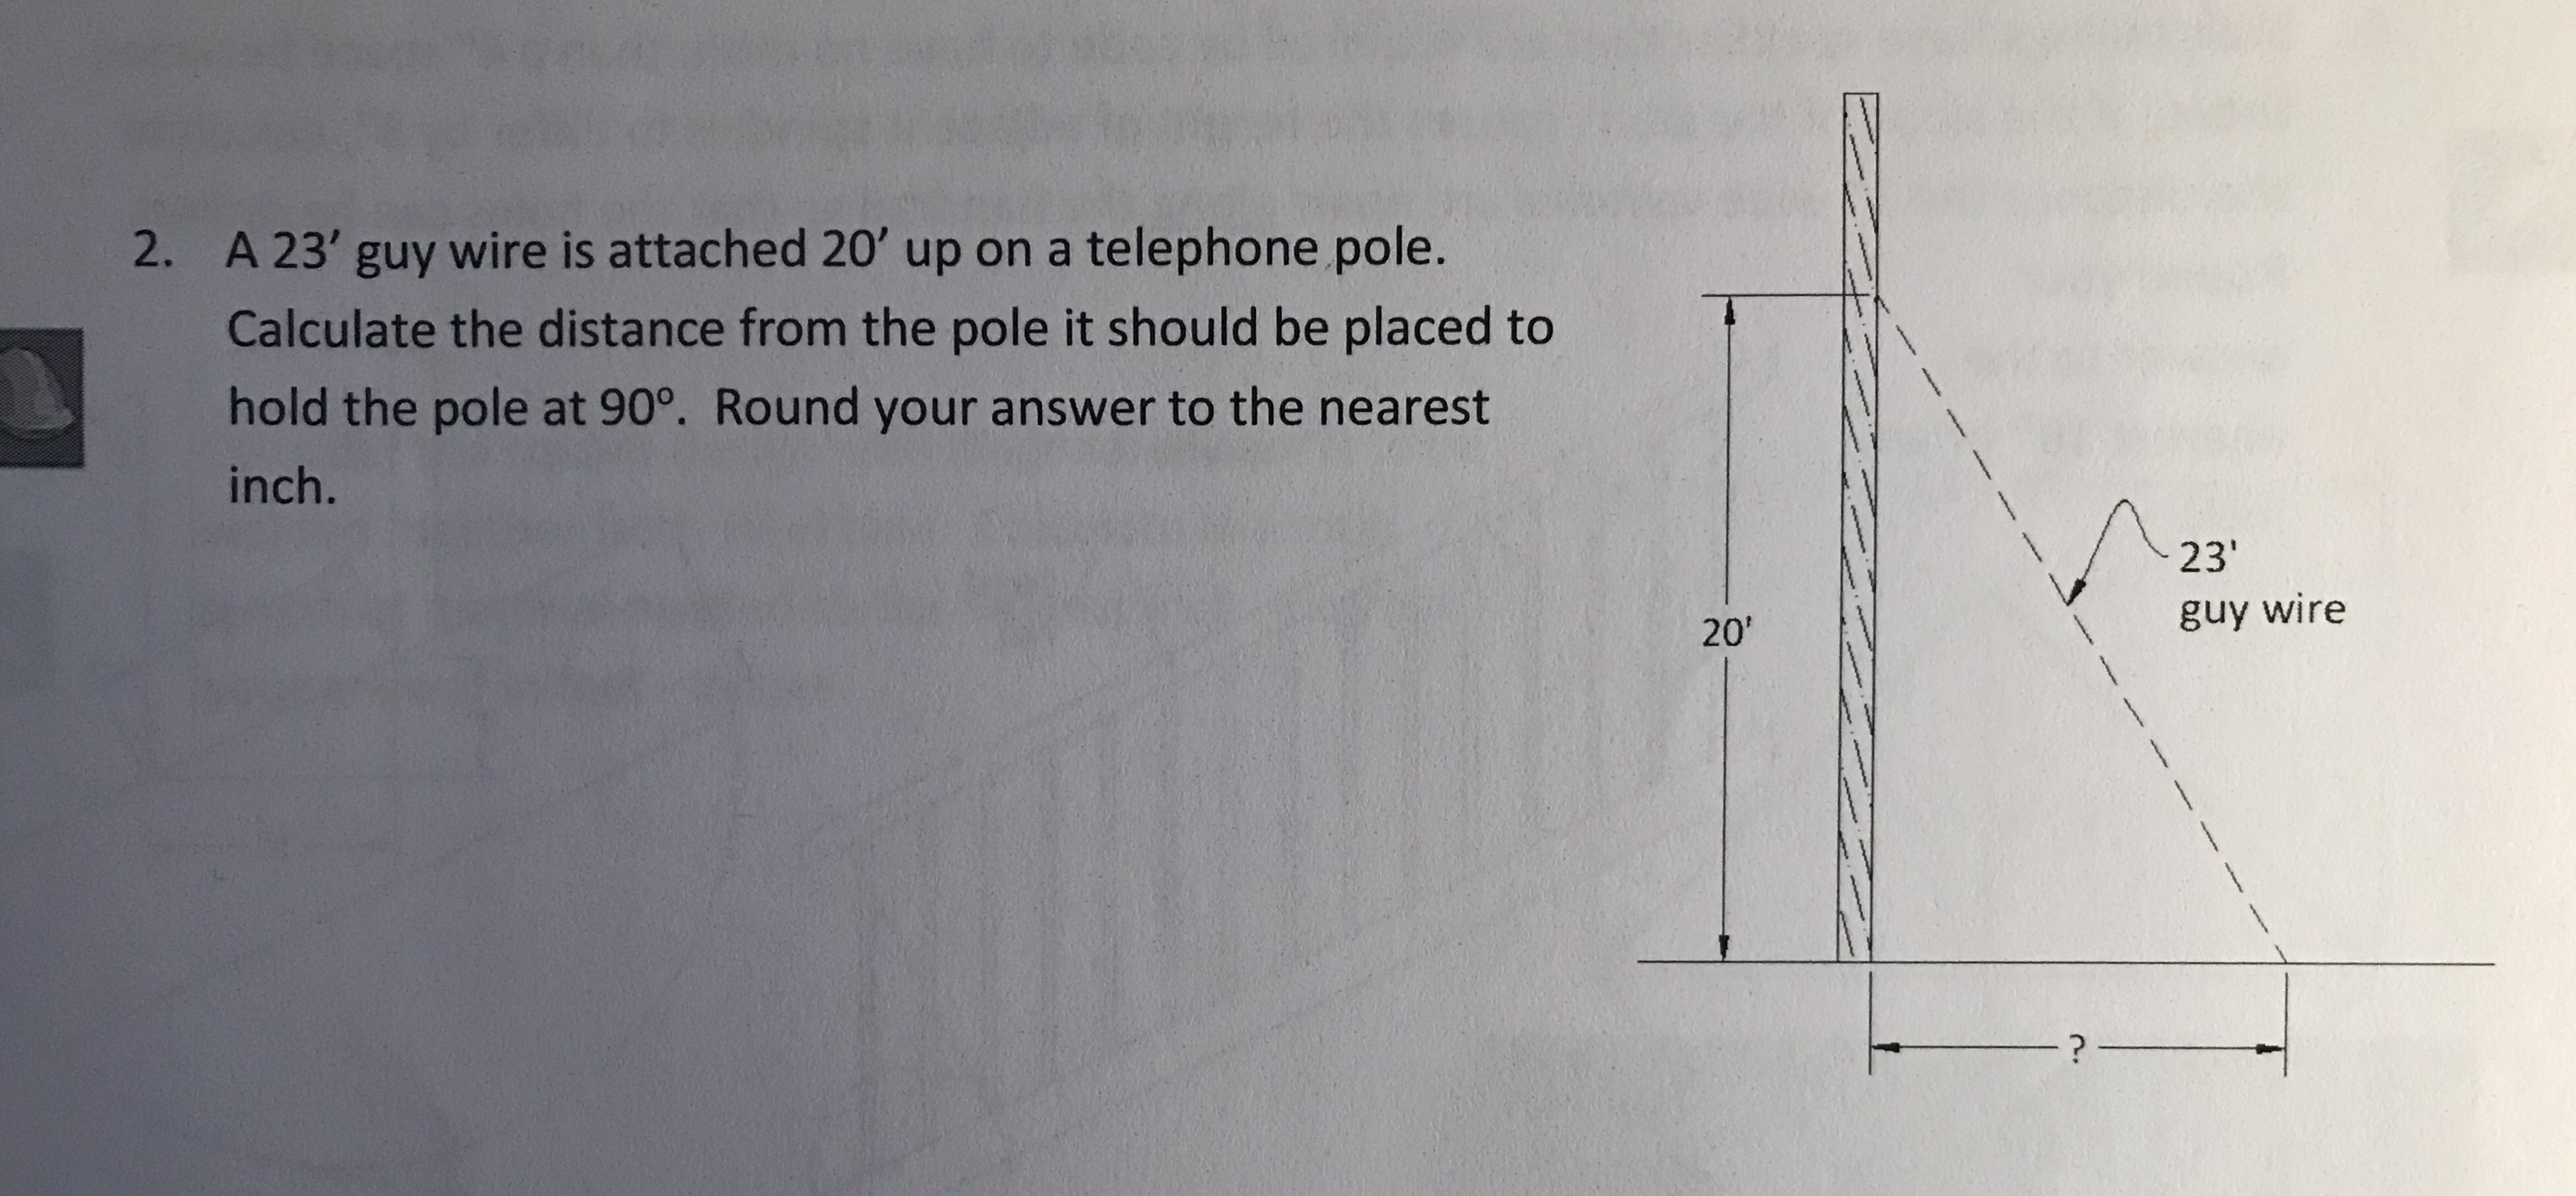 A 23' guy wire is attached 20' up on a telephone pole. Calculate the distance from the pole it should be placed to hold the pole at 90°. Round your answer to the nearest inch. 2. 23 guy wire 20'